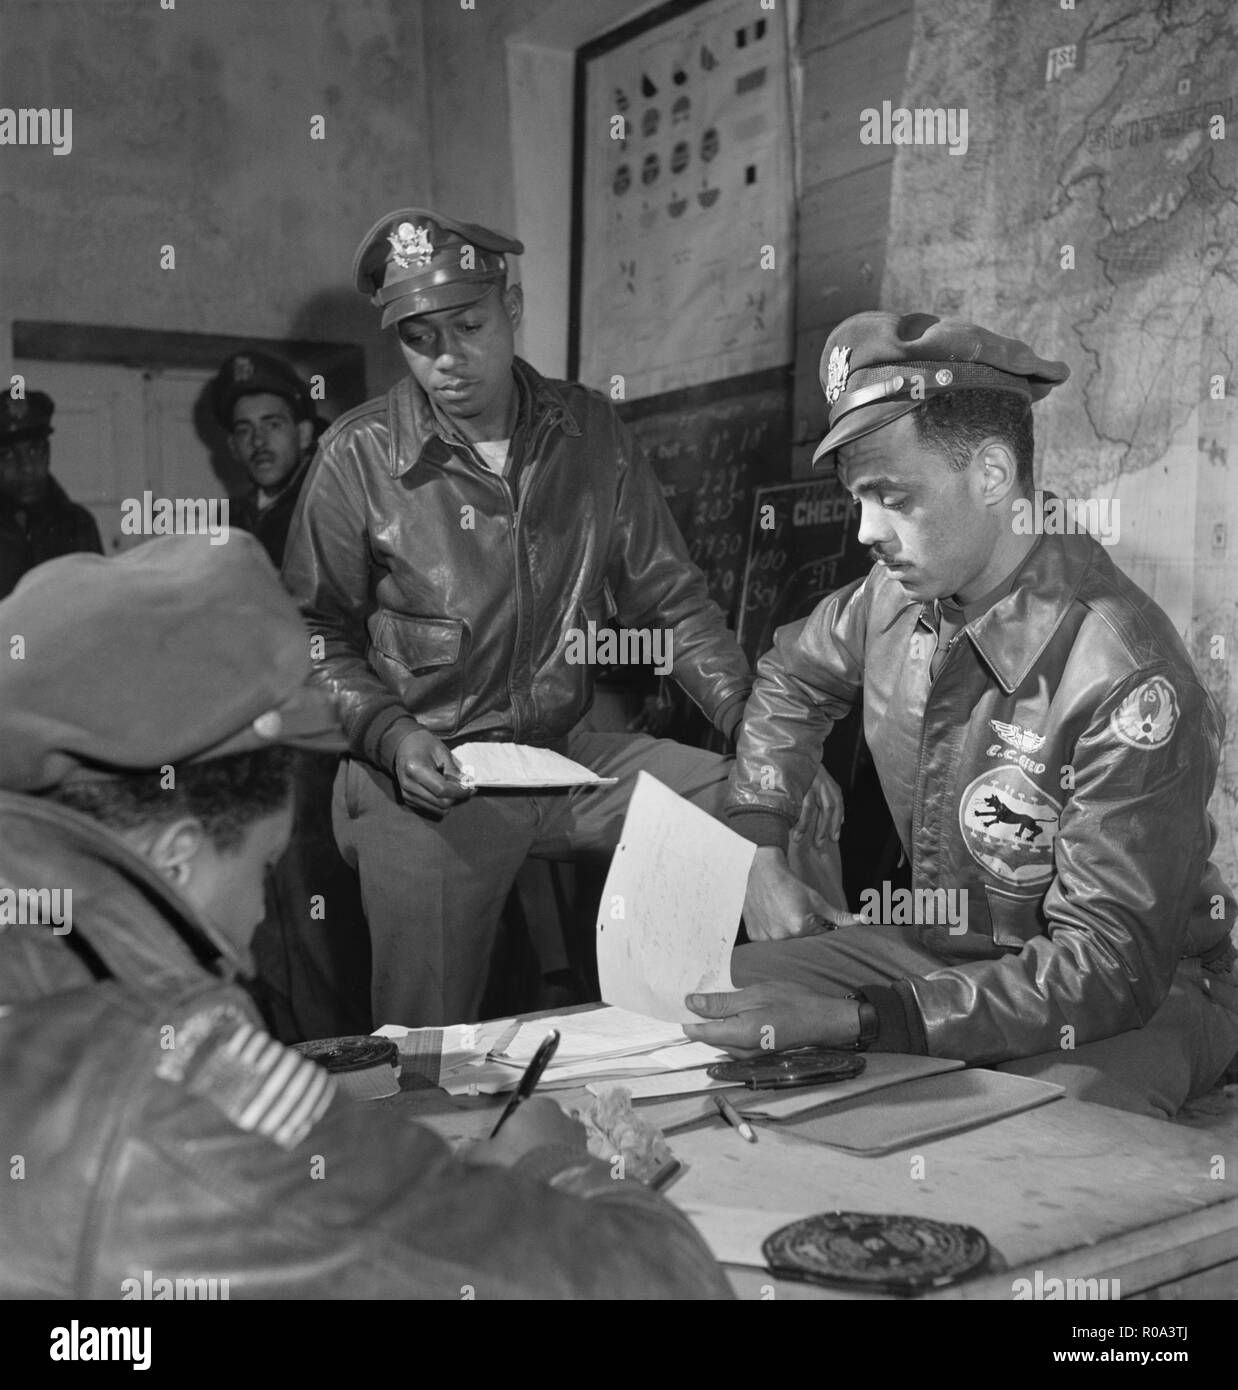 Tuskegee Airmen attending Briefing at Air Base, Woodrow W. Crockett, standing at center, Edward C. Gleed, Lawrence, KS, Class 42-K, Group Operations Officer, Seated on Right, and Unidentified Airman Seated on Left, Ramitelli, Italy, Toni Frissell, March 1945 - Stock Image